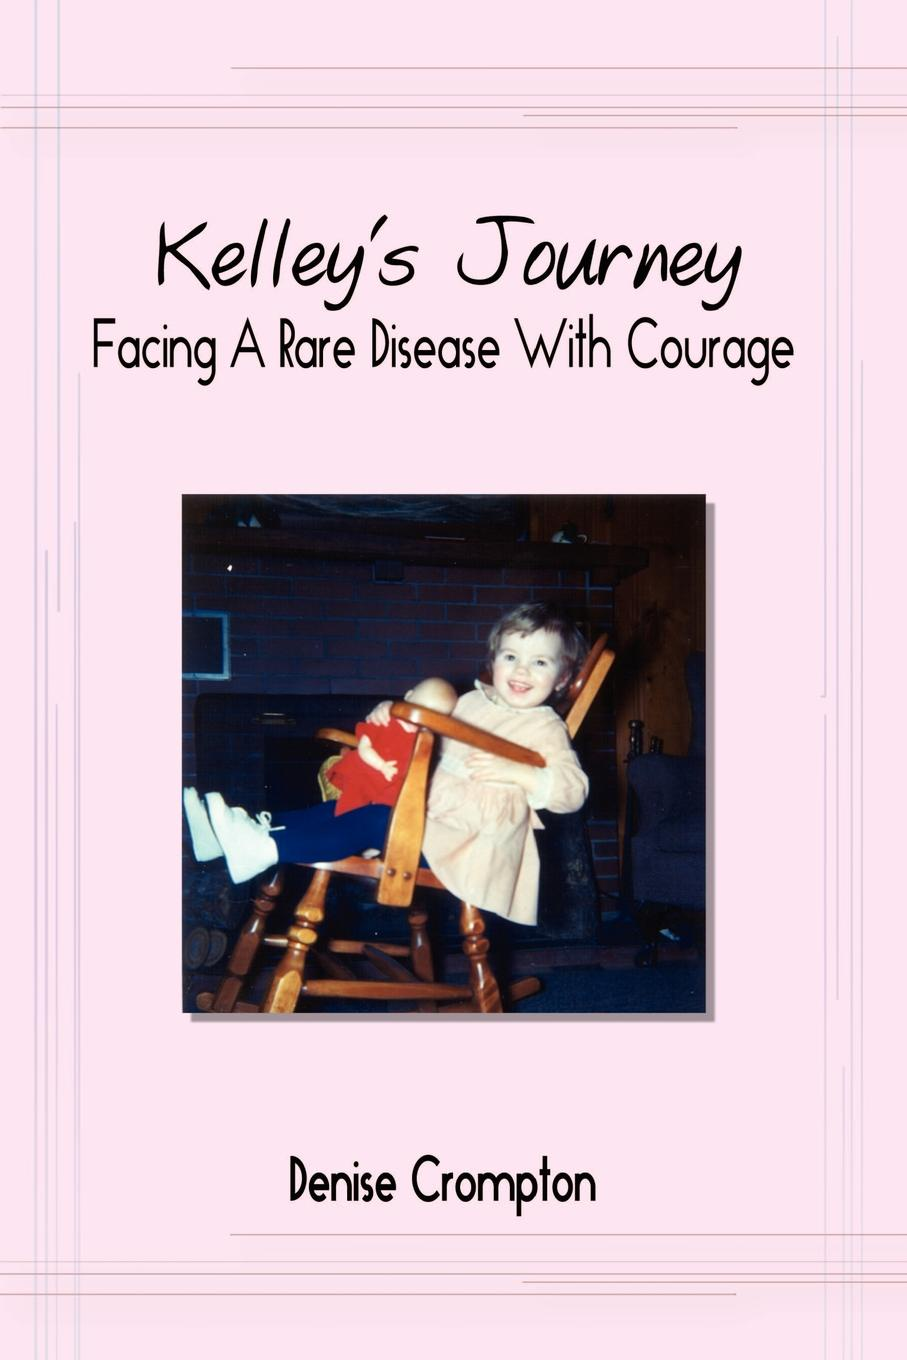 Denise Crompton Kelleys Journey. Facing A Rare Disease With Courage